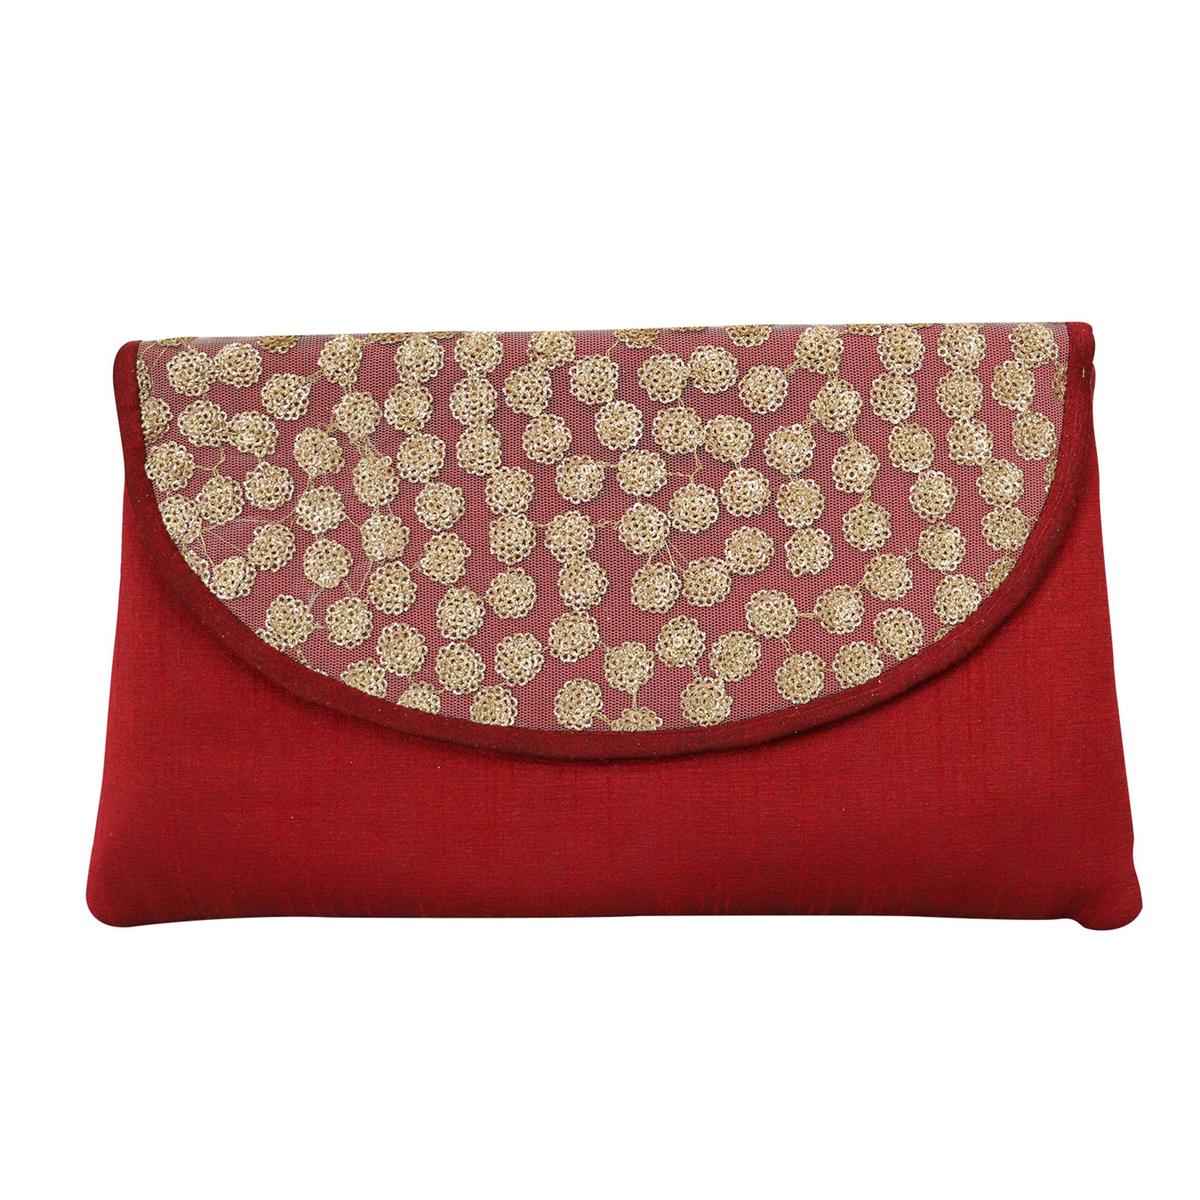 Lelys - Handcrafted Designer Clutch For Party/Function